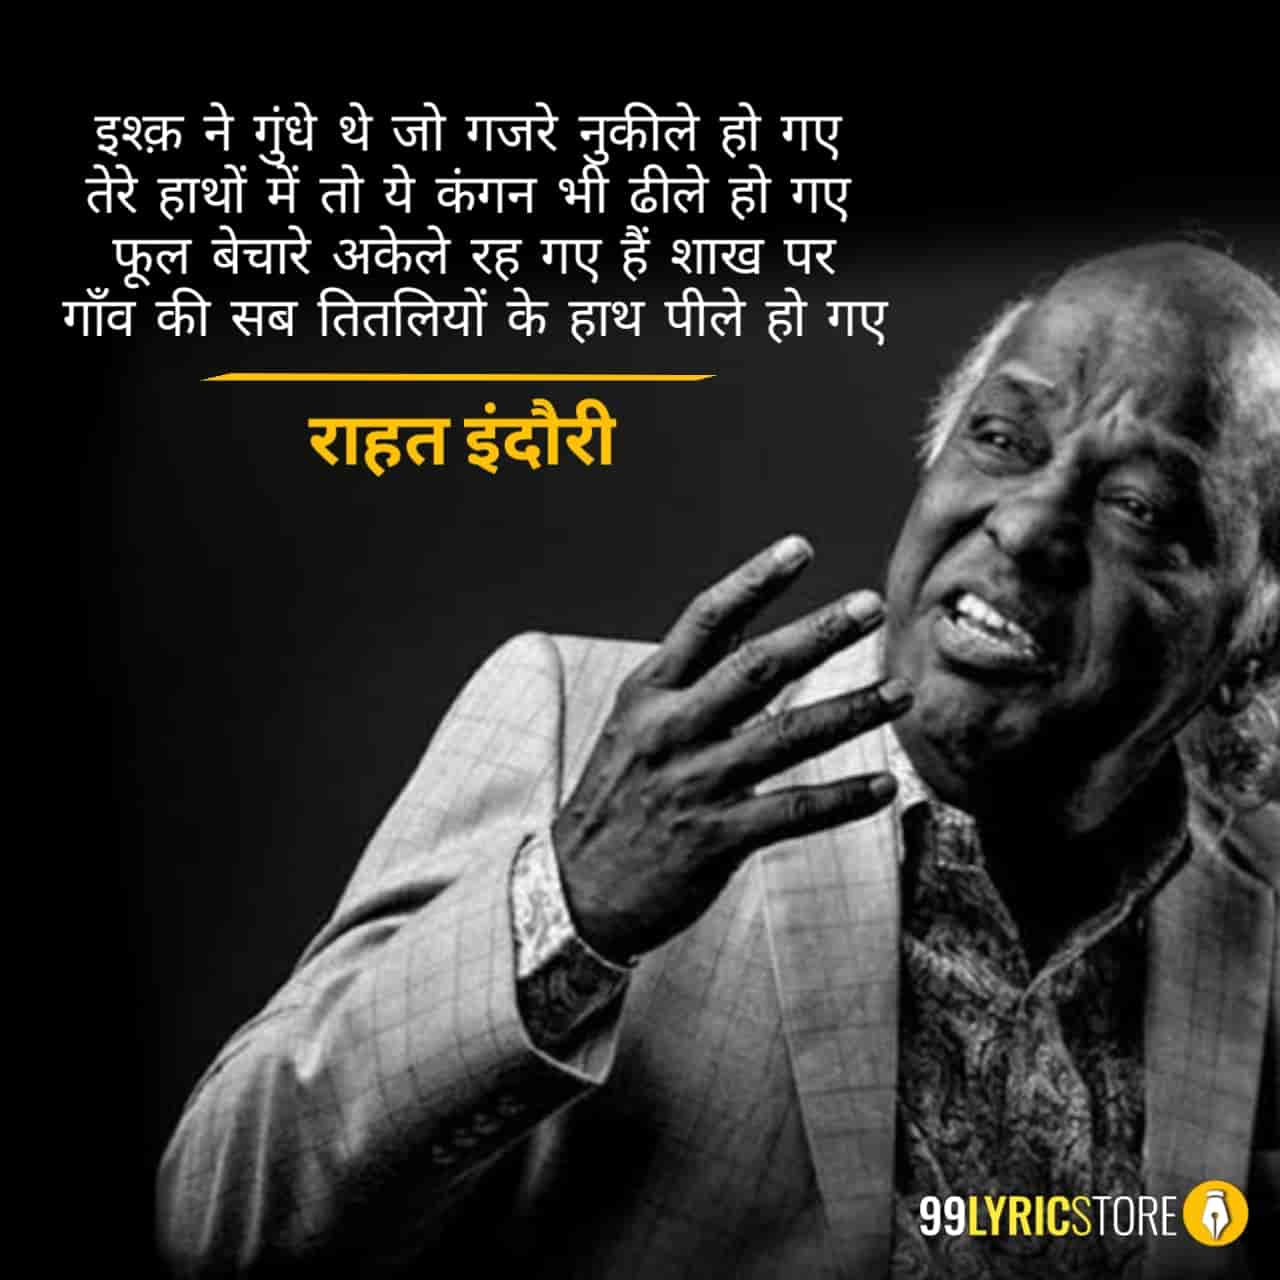 This Beautiful Ghazal 'Gaanv Ki Sab Titliyon Ke Haath Peele Ho Gaye' which is written and performed by Rahat Indori.